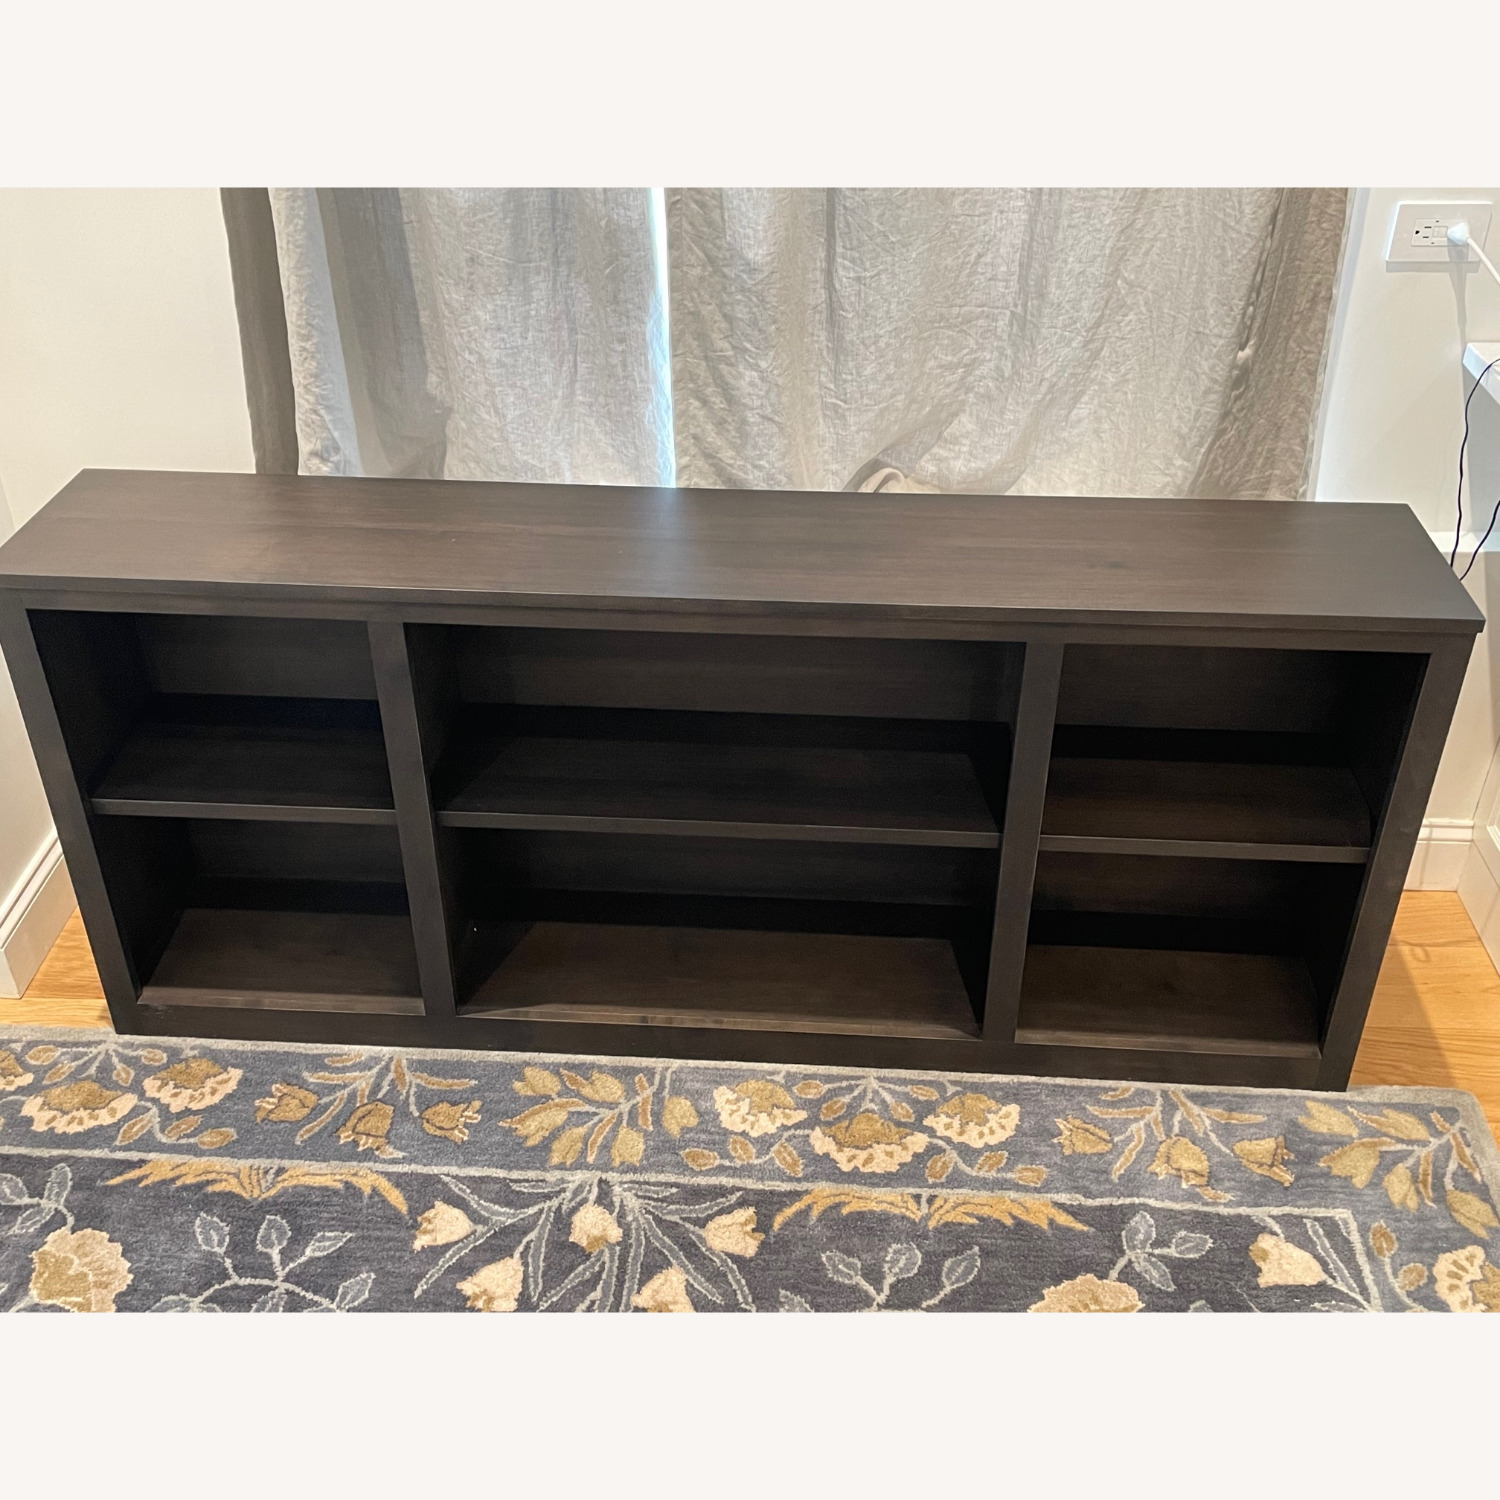 Room & Board Woodwind Console Bookcase in maple - image-2